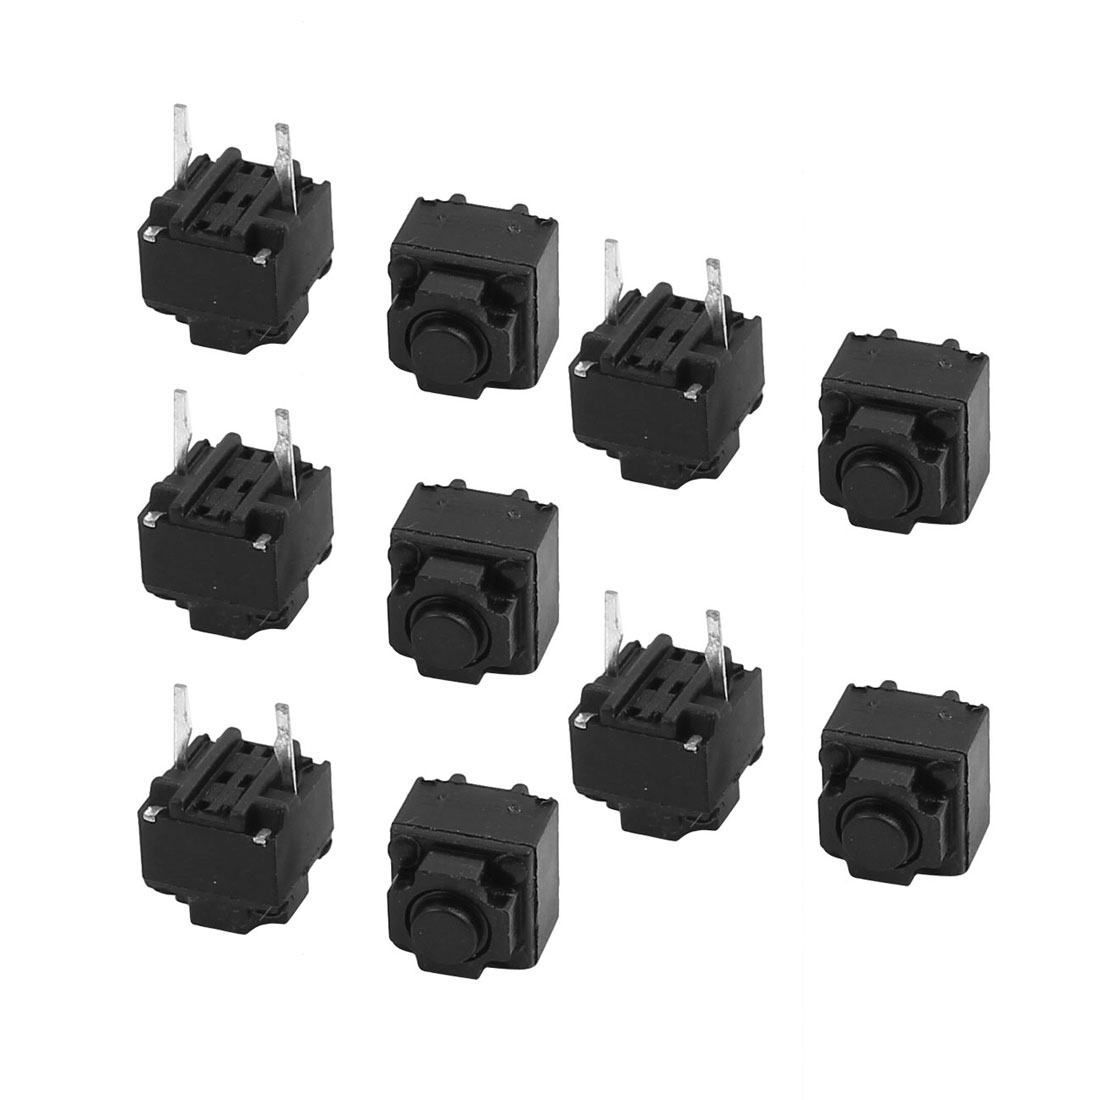 10Pcs Panel PCB Momentary Tactile Tact Push Button Switch KR1610130136